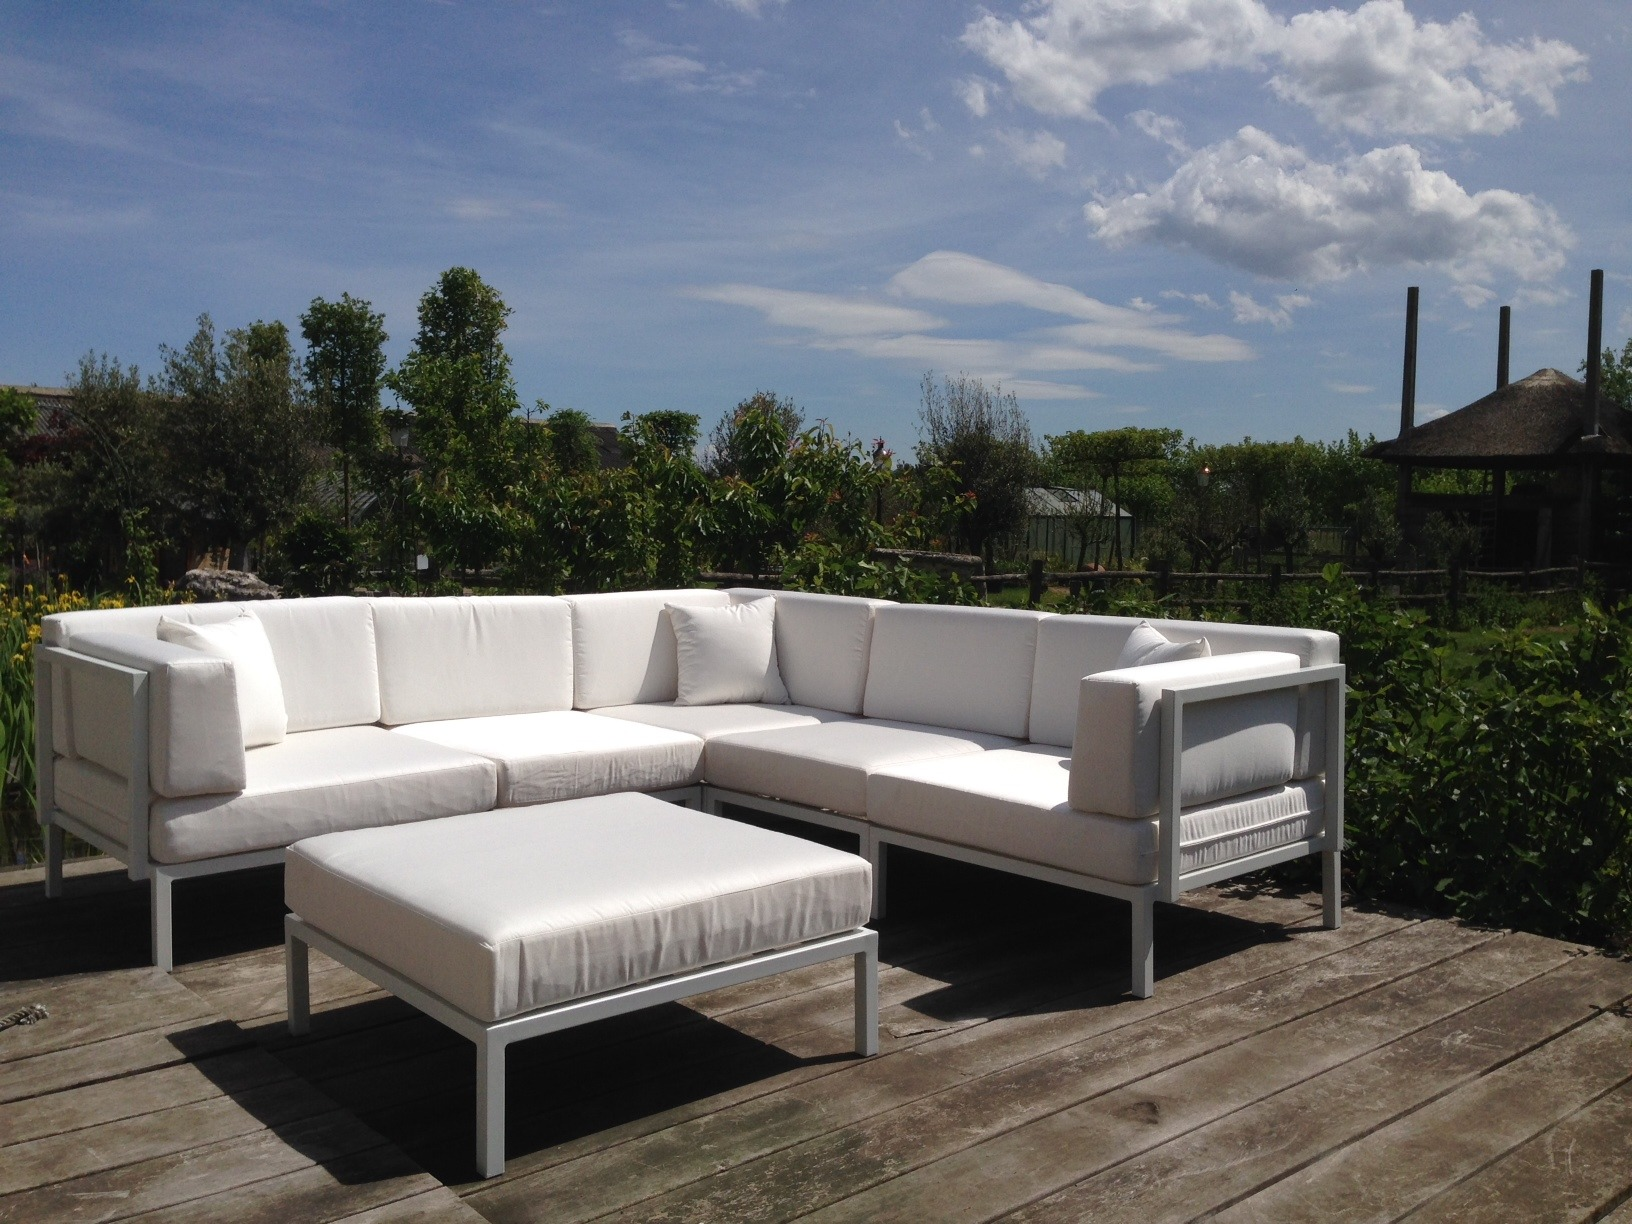 Outlet Loungeset Tuin.Tuinset Action Archieven Pagina 3 Van 6 Outdoorinstyle